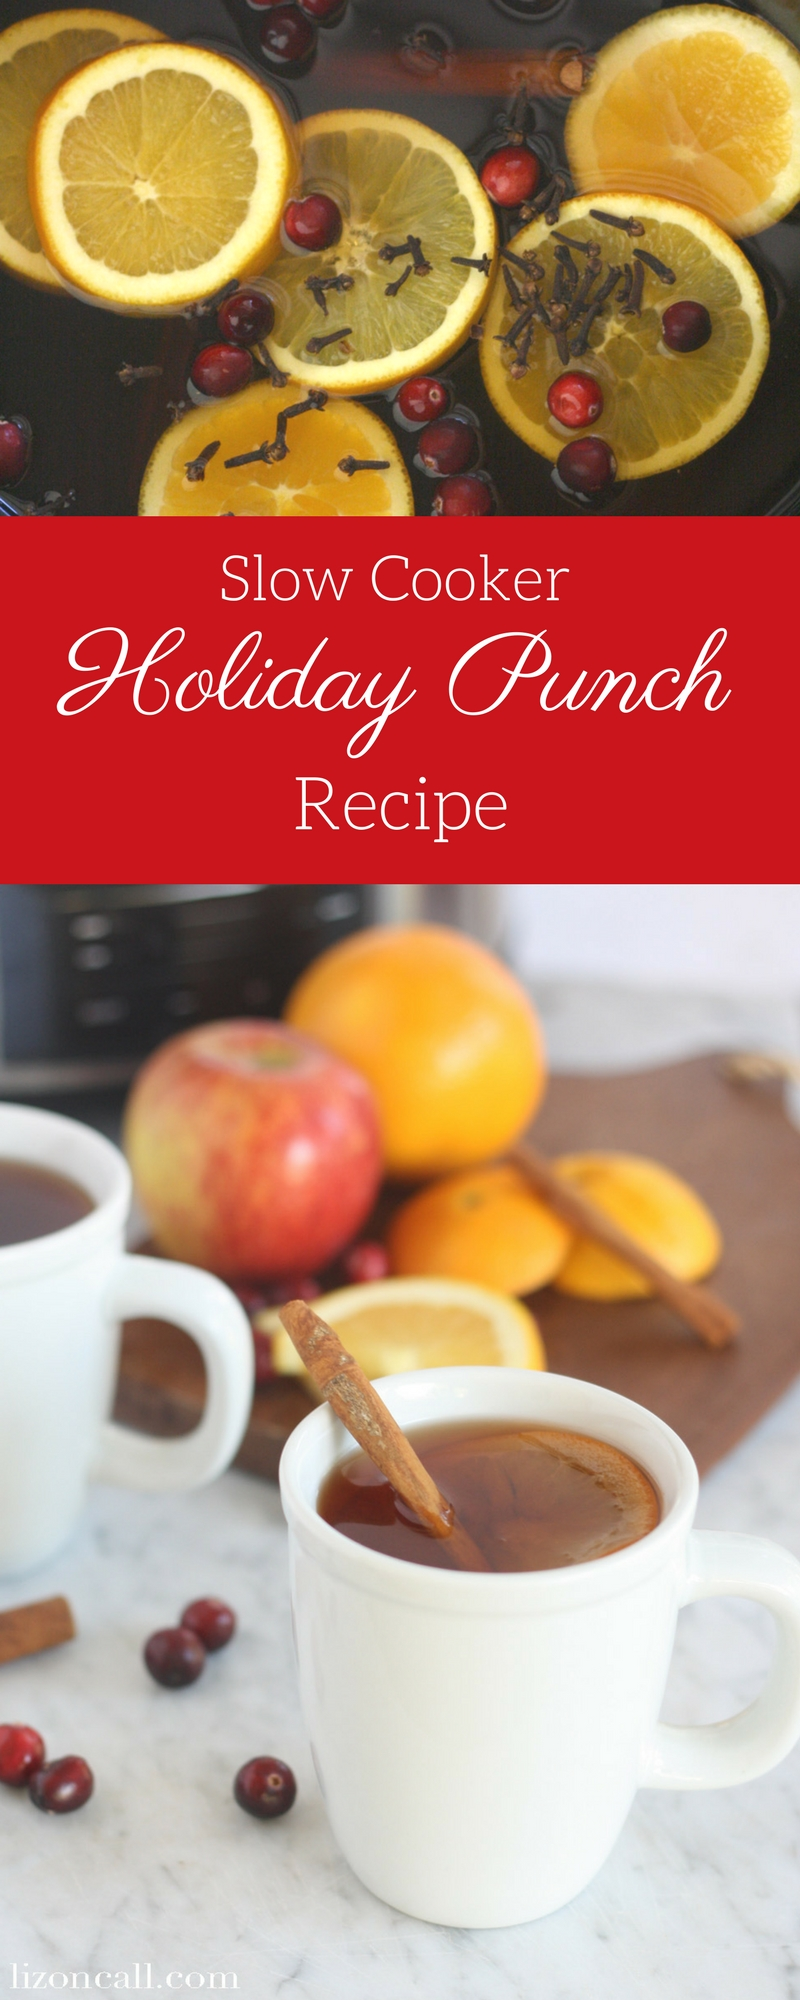 Warm up your party guests with this slow cooker party punch recipe. It will be a delicious addition to your holiday gatherings. #partypunch #slowcooker #holidayrecipes